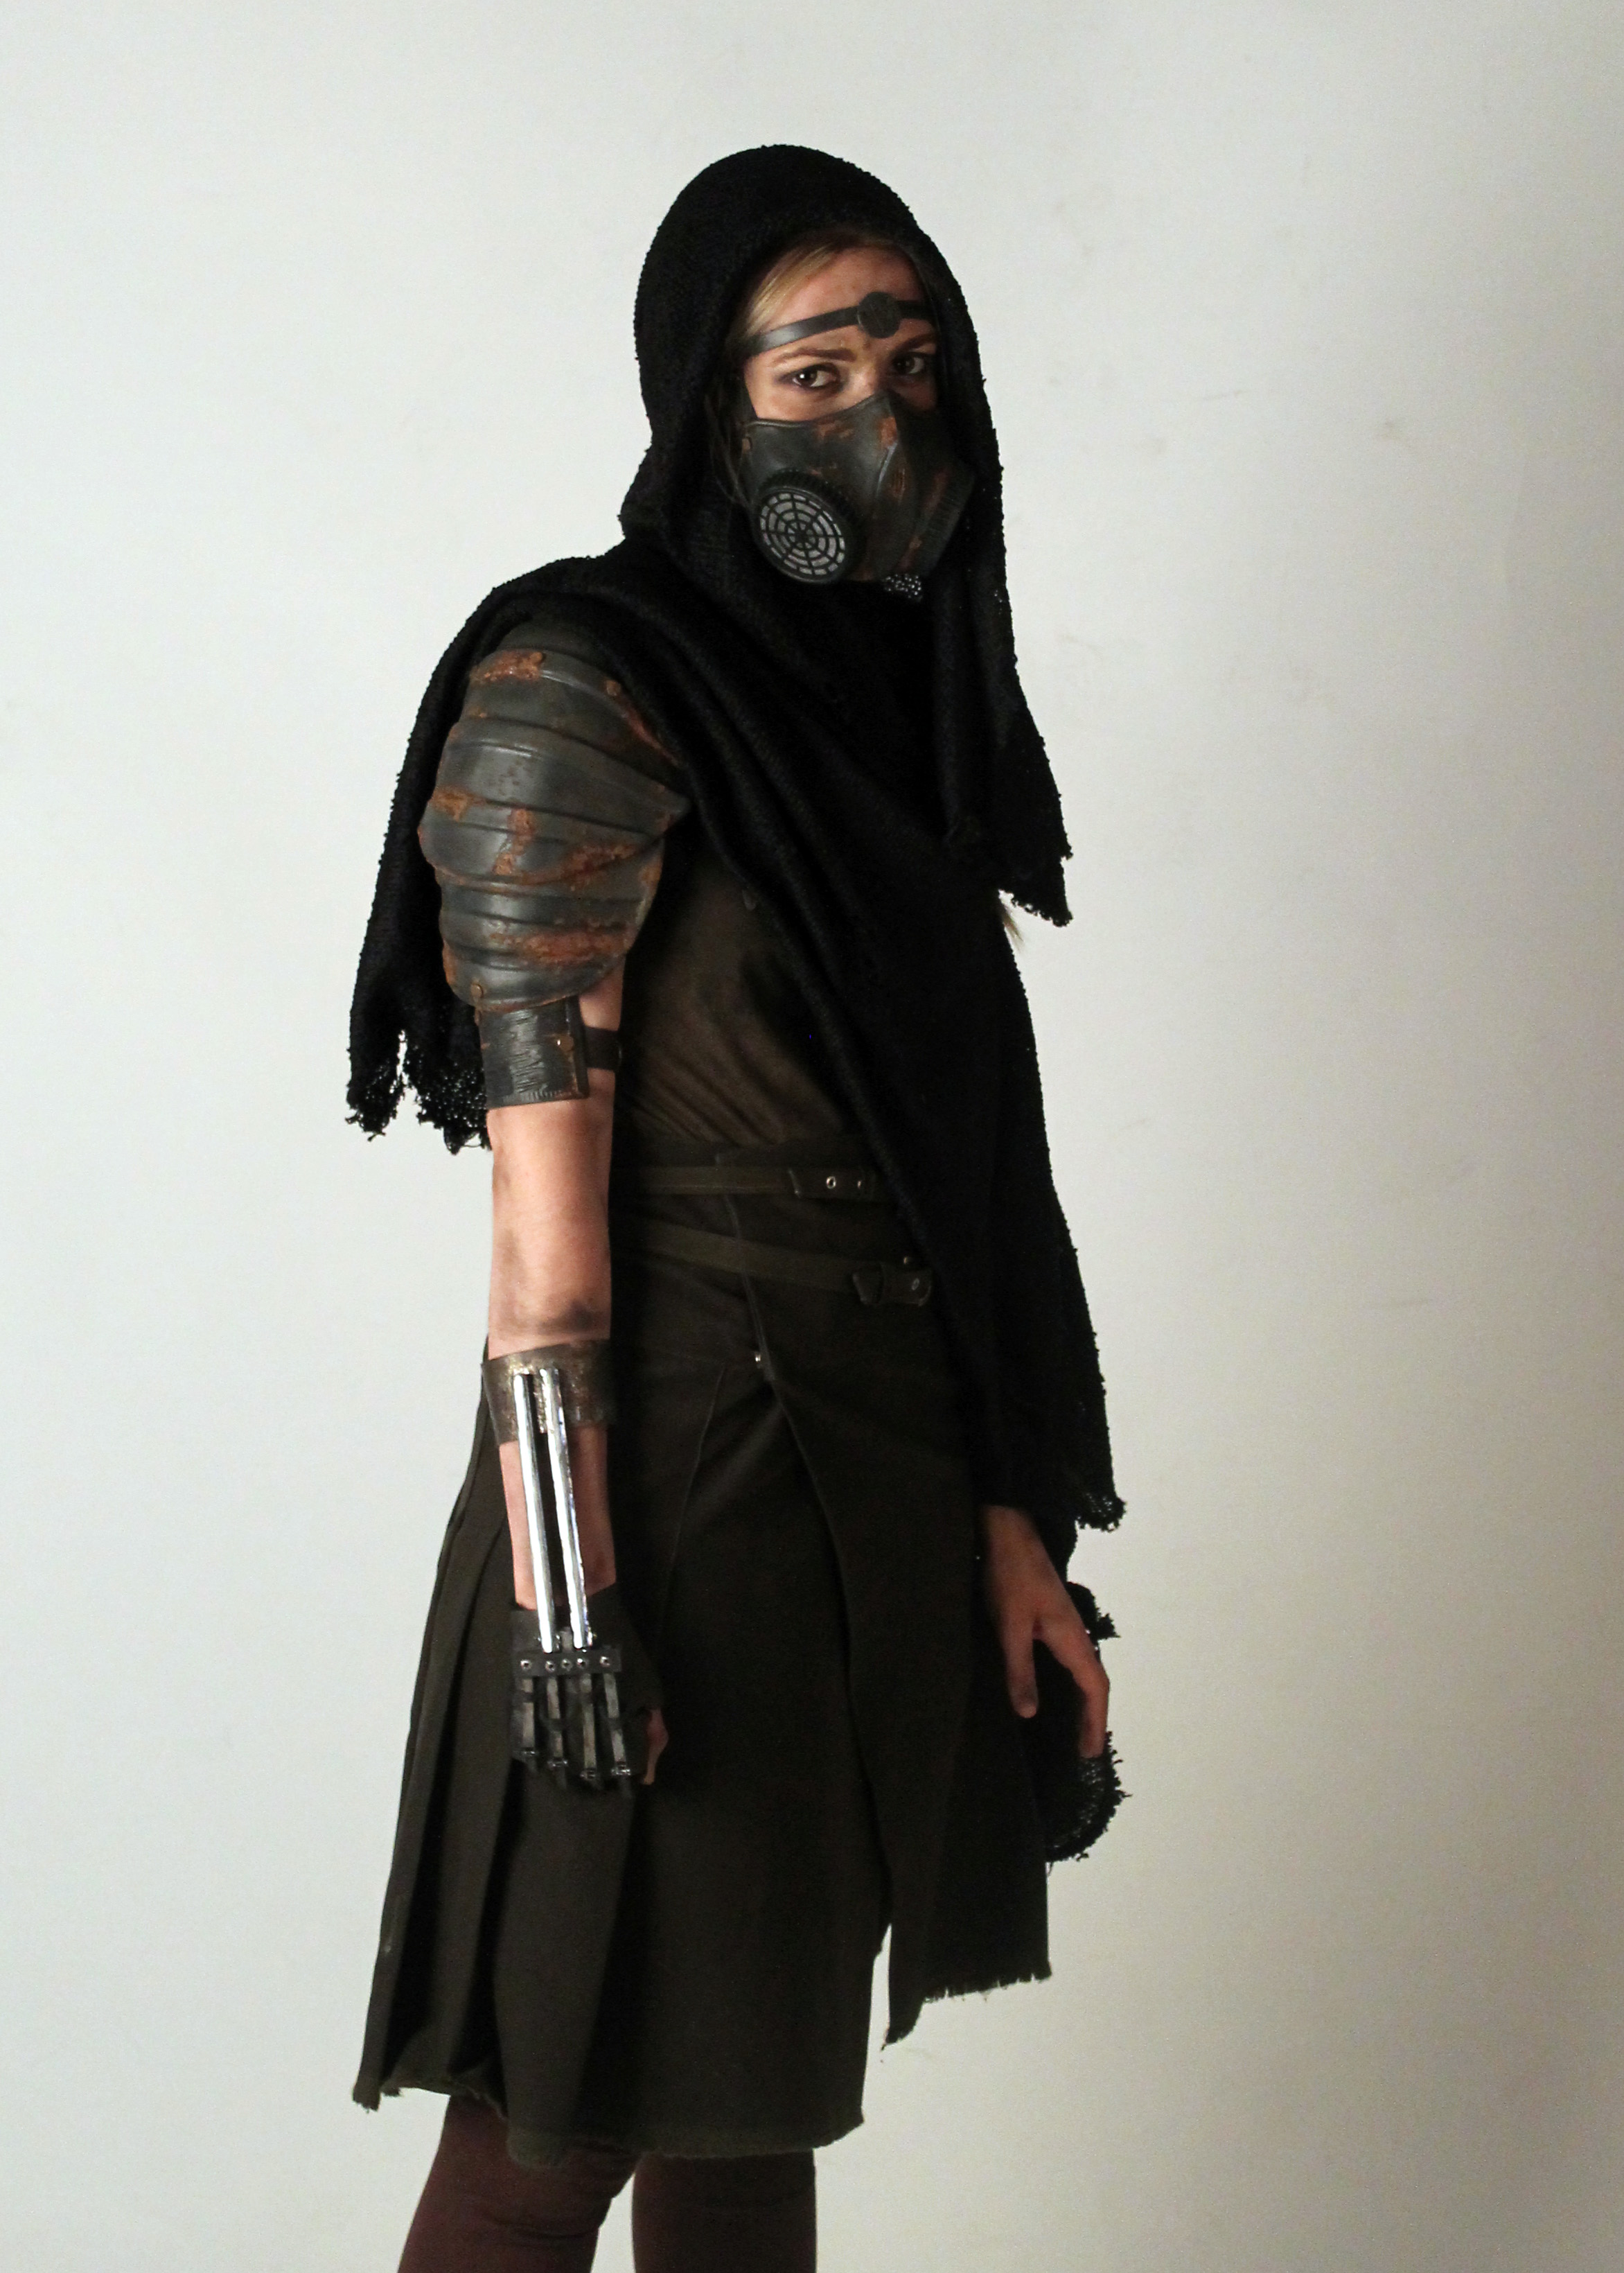 Metropolis footsoldier character costume with armour